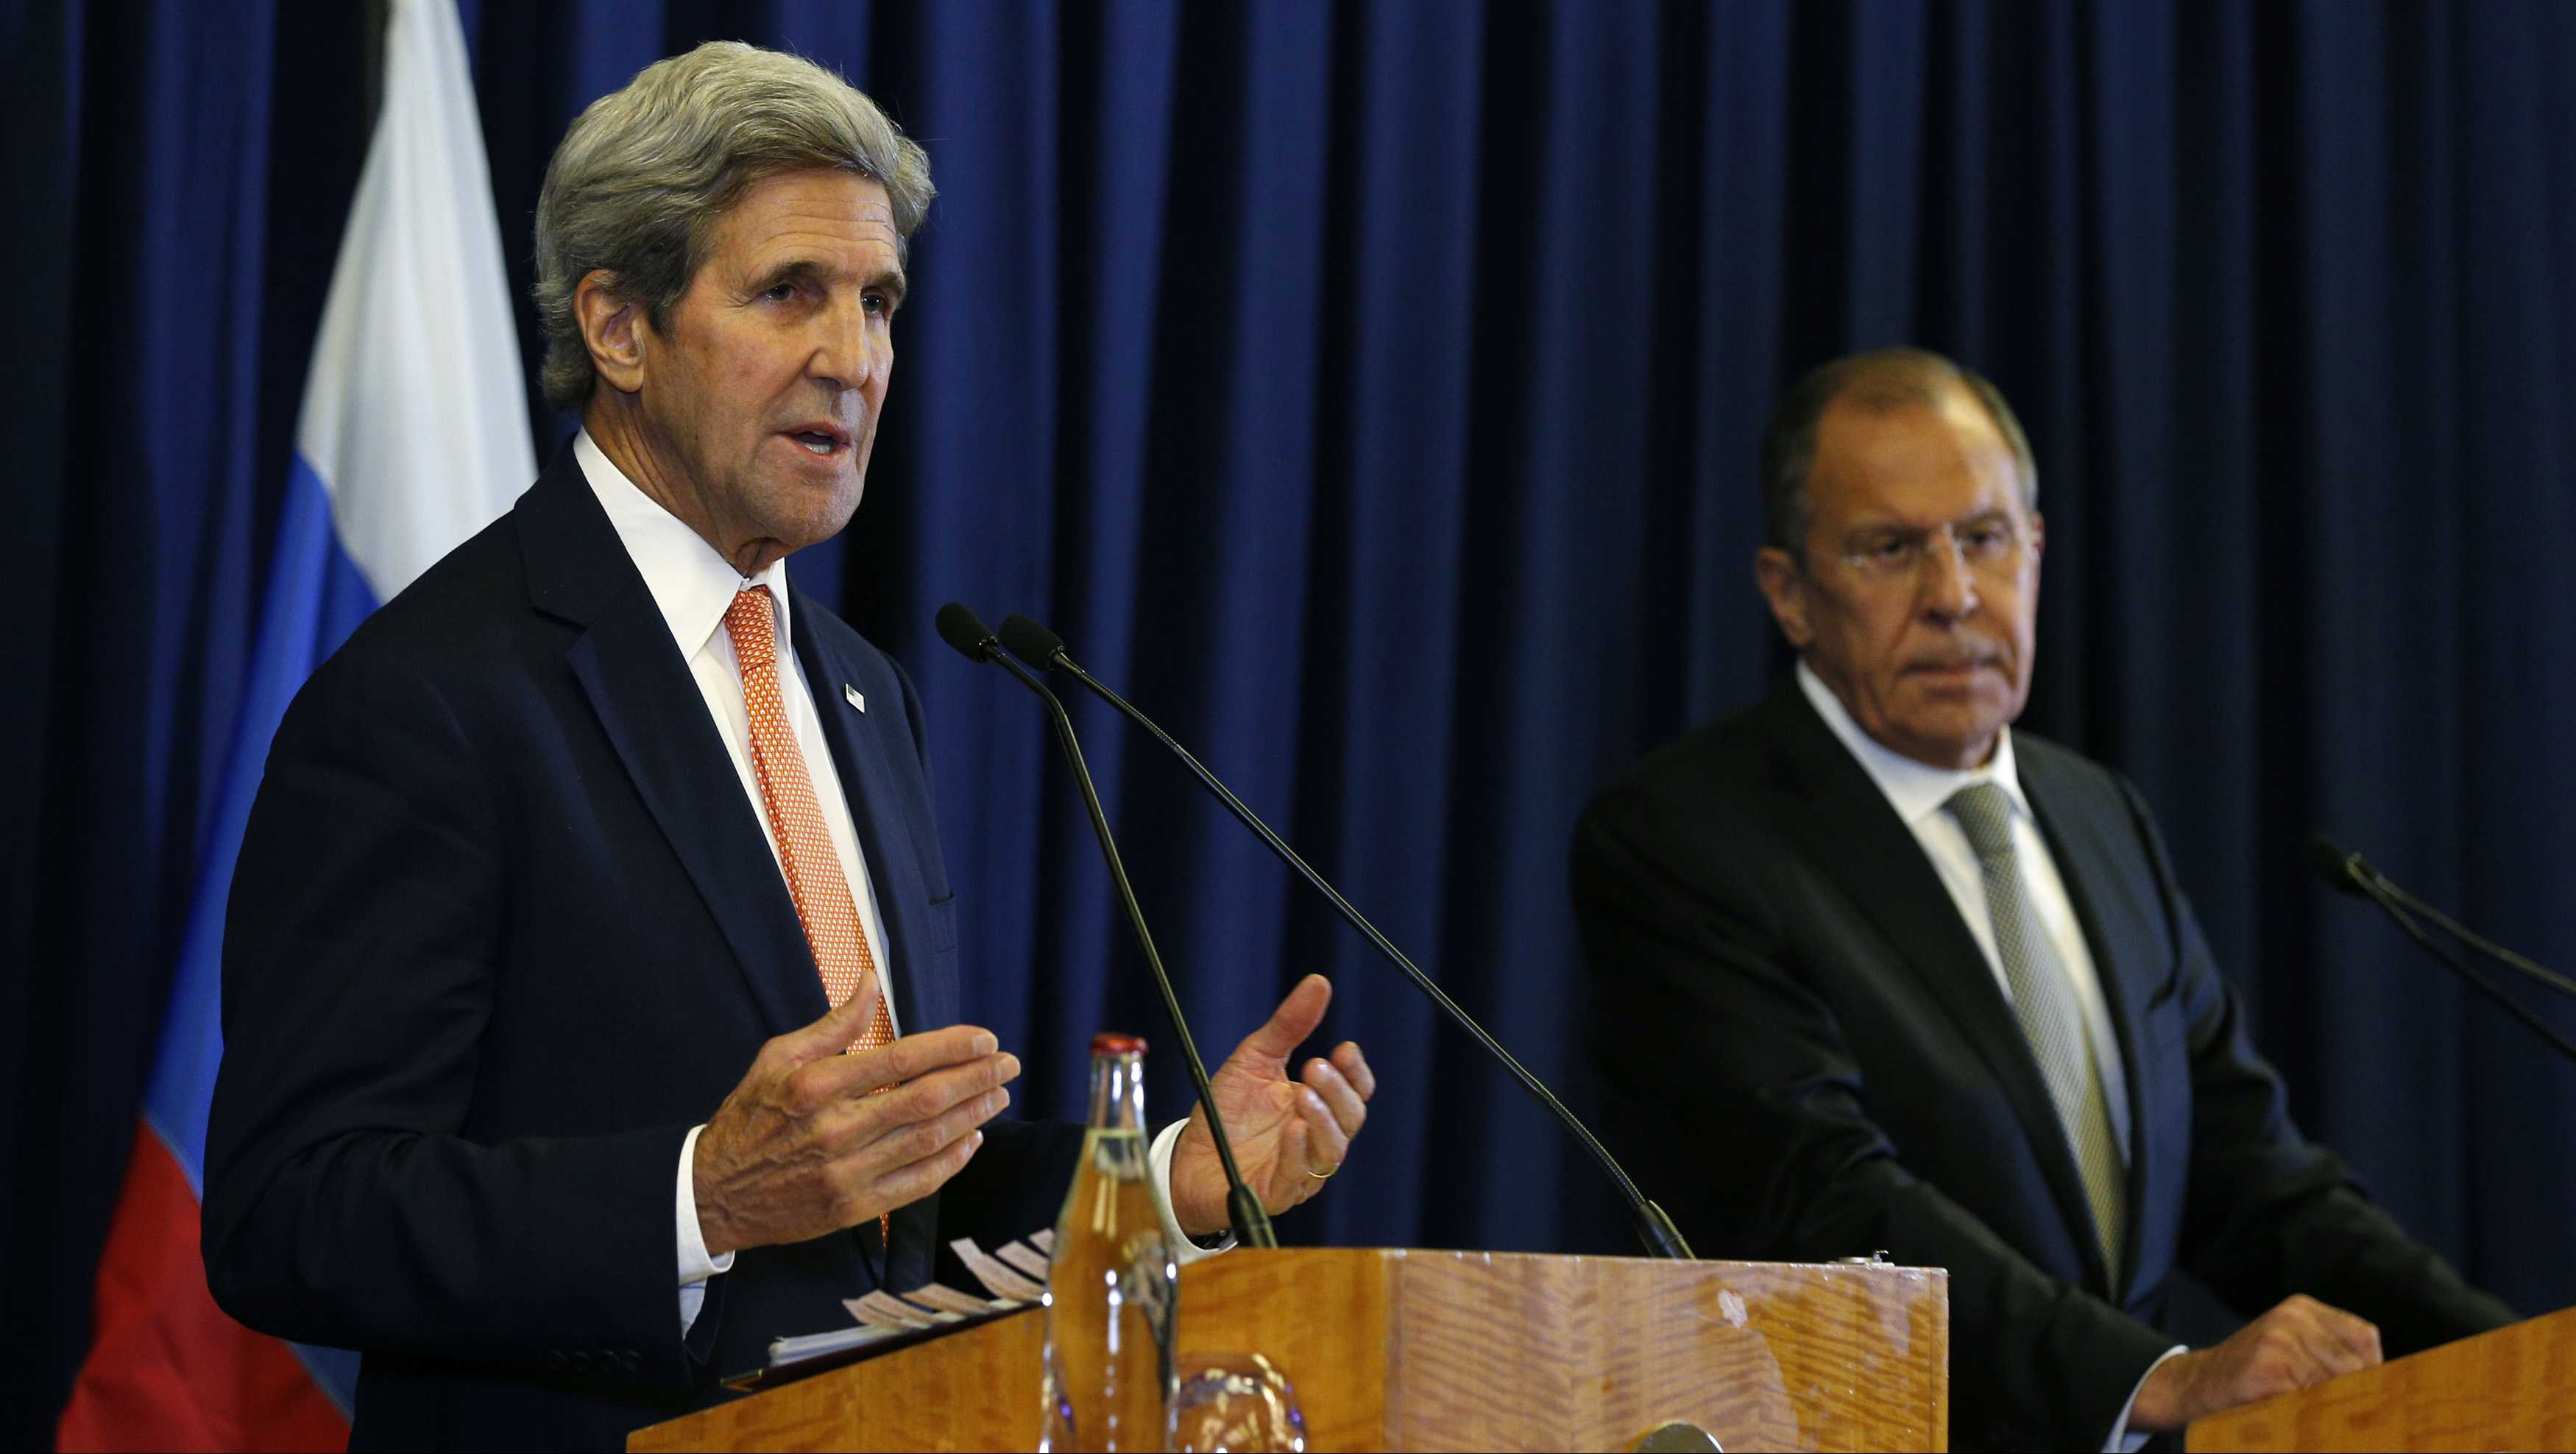 U.S. Secretary of State John Kerry and Russian Foreign Minister Sergey Lavrov hold a press conference following their meeting in Geneva, where they discussed the crisis in Syria.